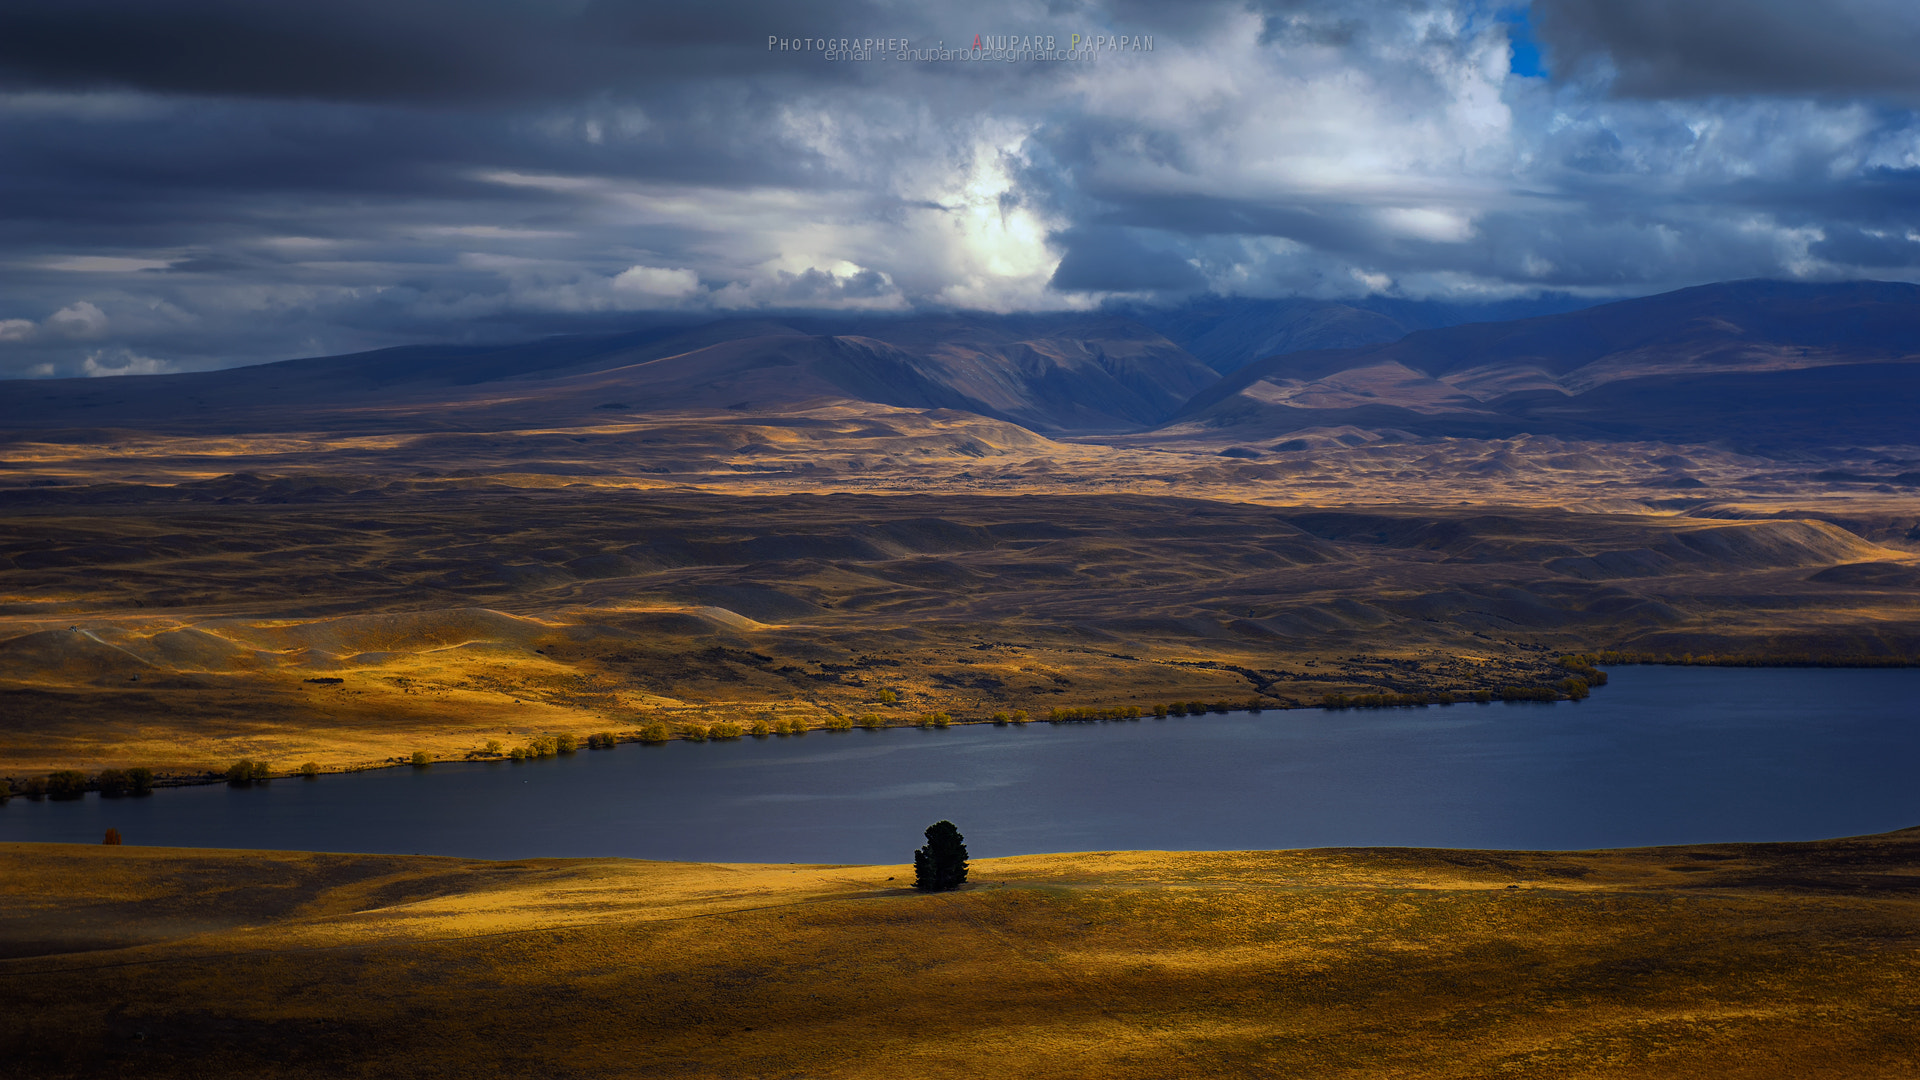 Photograph Lonely Tree by Anuparb Papapan on 500px